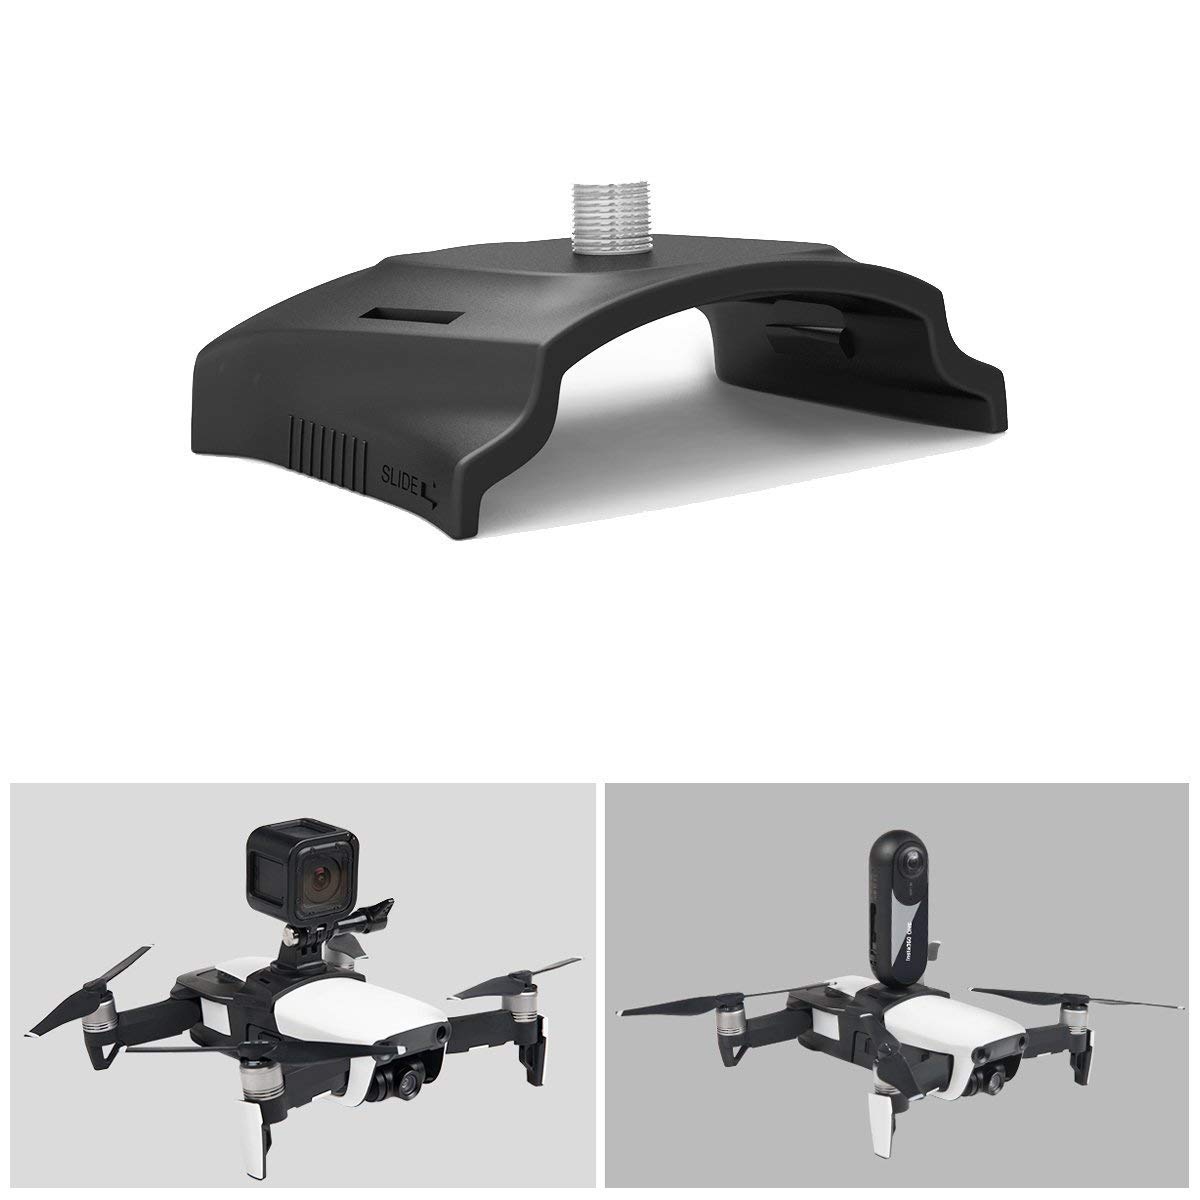 for DJI Mavic Air Drone Multifunction Adapter Bracket Holder with Screw, Mount 360-degree Rotatable Action Panorama Camera / Gopro Sport Camera LEMONPET